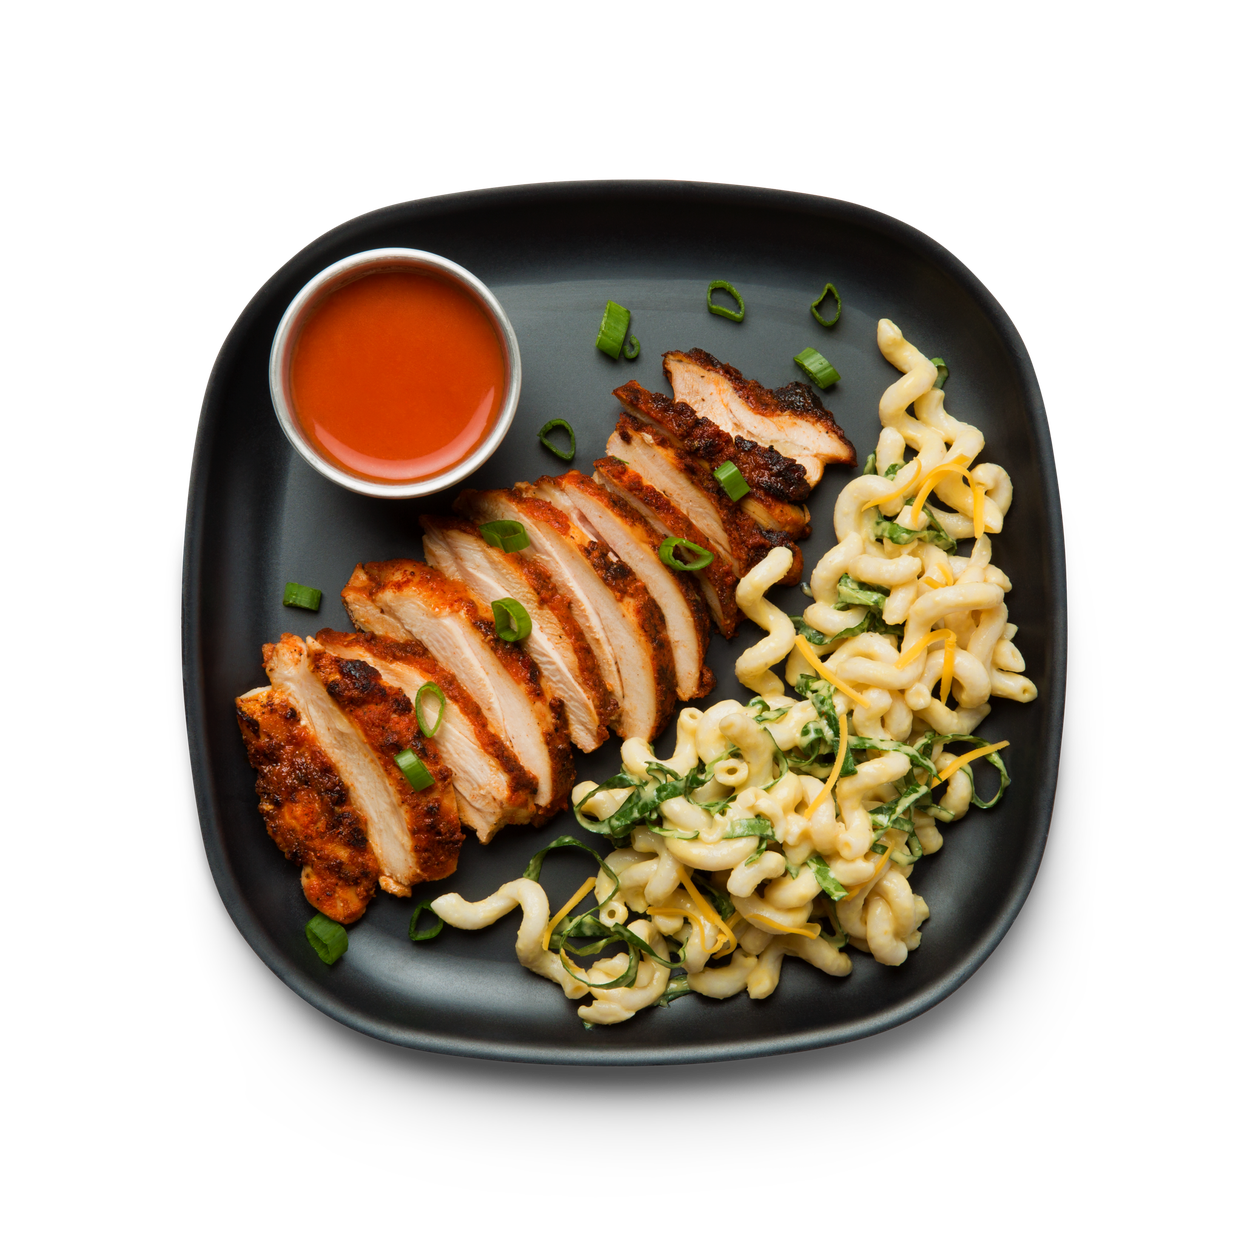 Lunch dinner snap kitchen hot chicken with fusilli cheese forumfinder Images